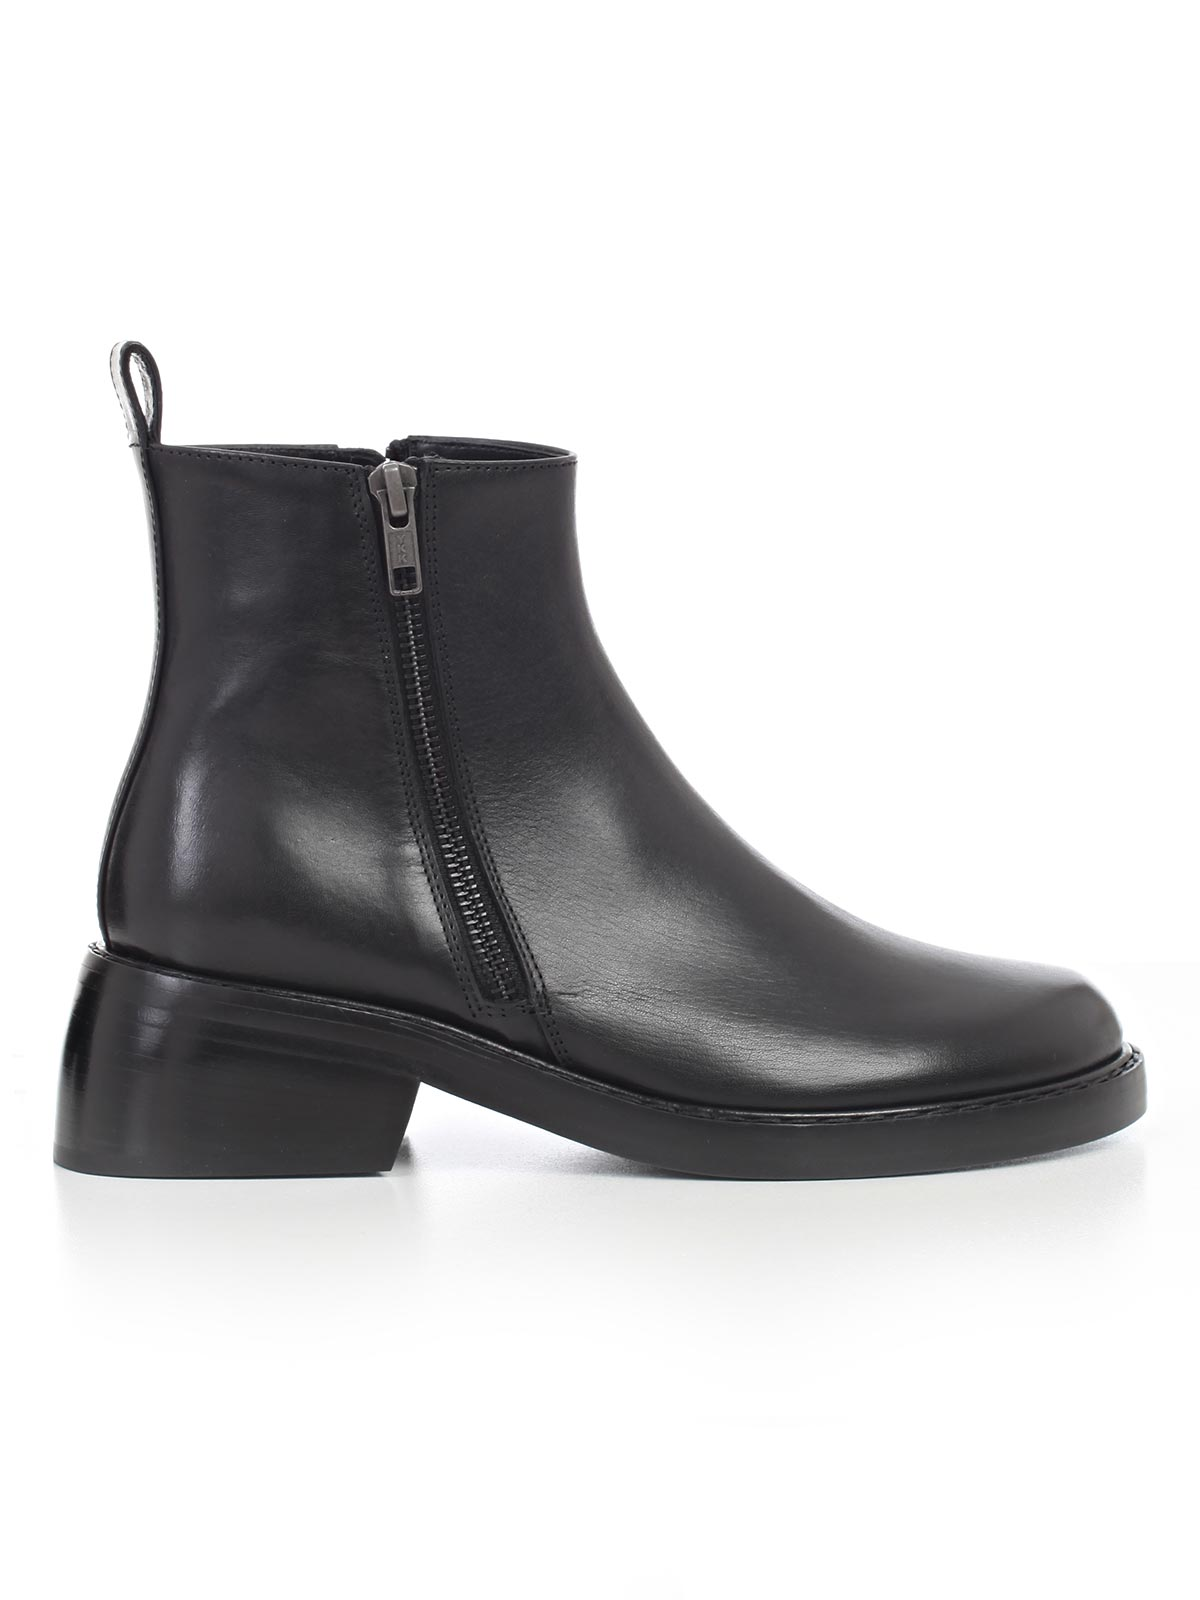 Picture of ANN DEMEULEMESTER Boots